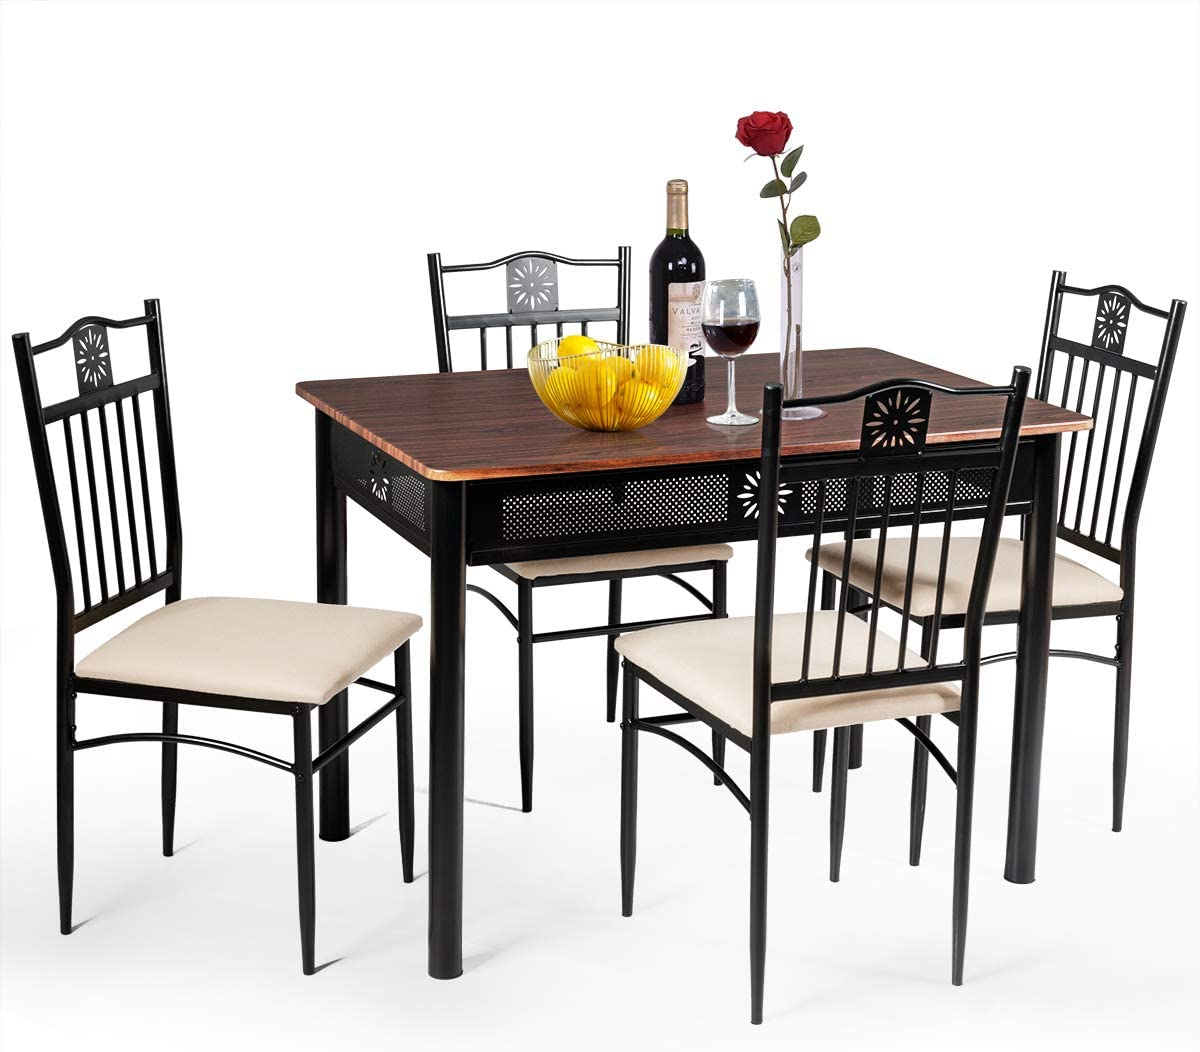 Buy TANGKULA 9 Piece Dining Table and Chairs Set Vintage Retro ...